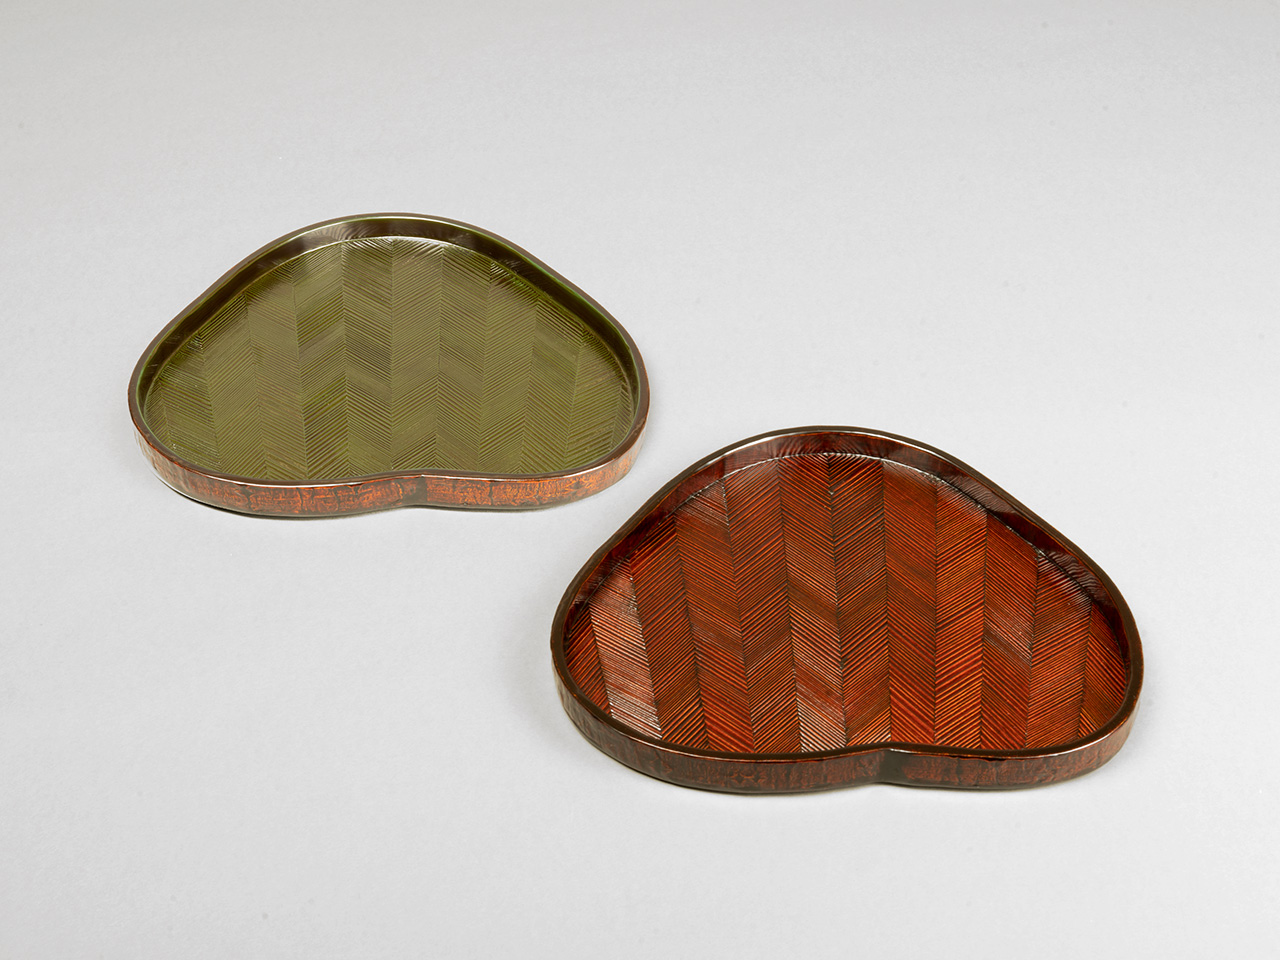 Dry Confection Tray with Pine Needle Motif